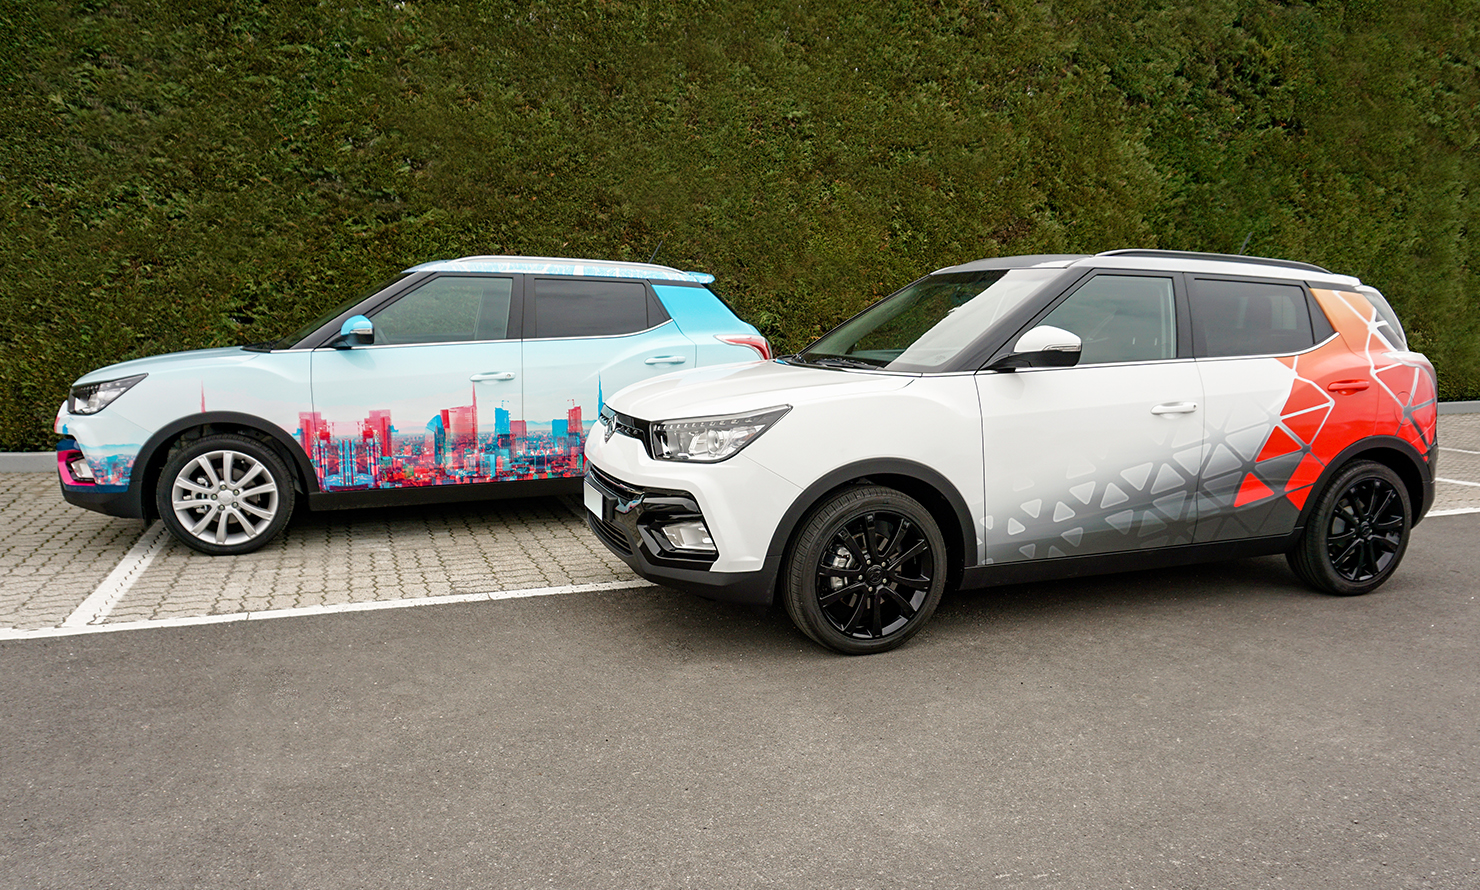 https://kubelibre.com/uploads/Slider-work-tutti-clienti/ssangyong-tivoli-design-take-over-exhibition-mudec-milano-2.jpg